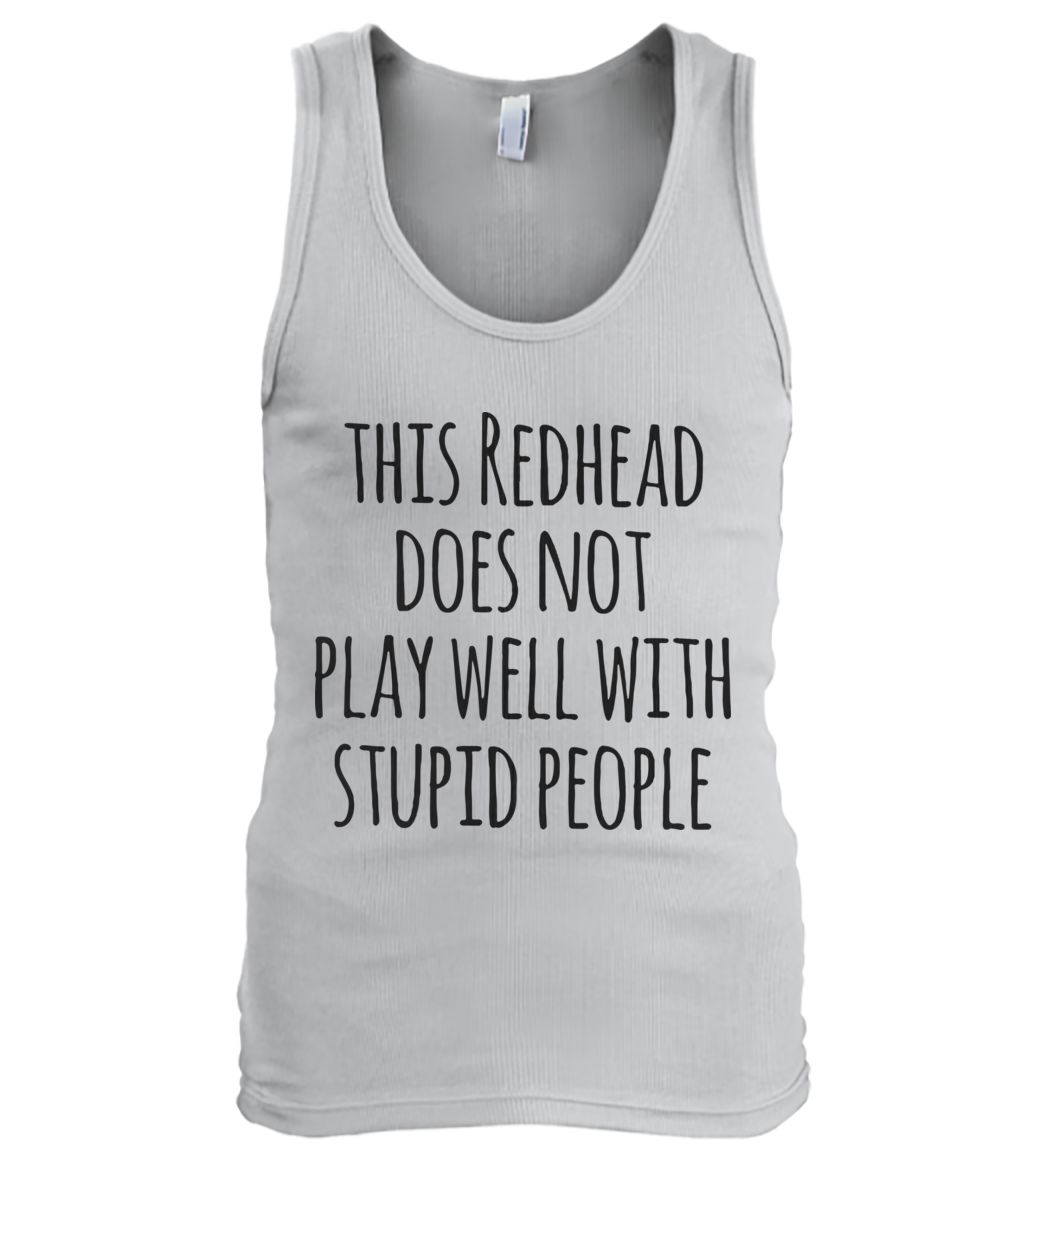 This redhead does not play well with stupid people men's tank top